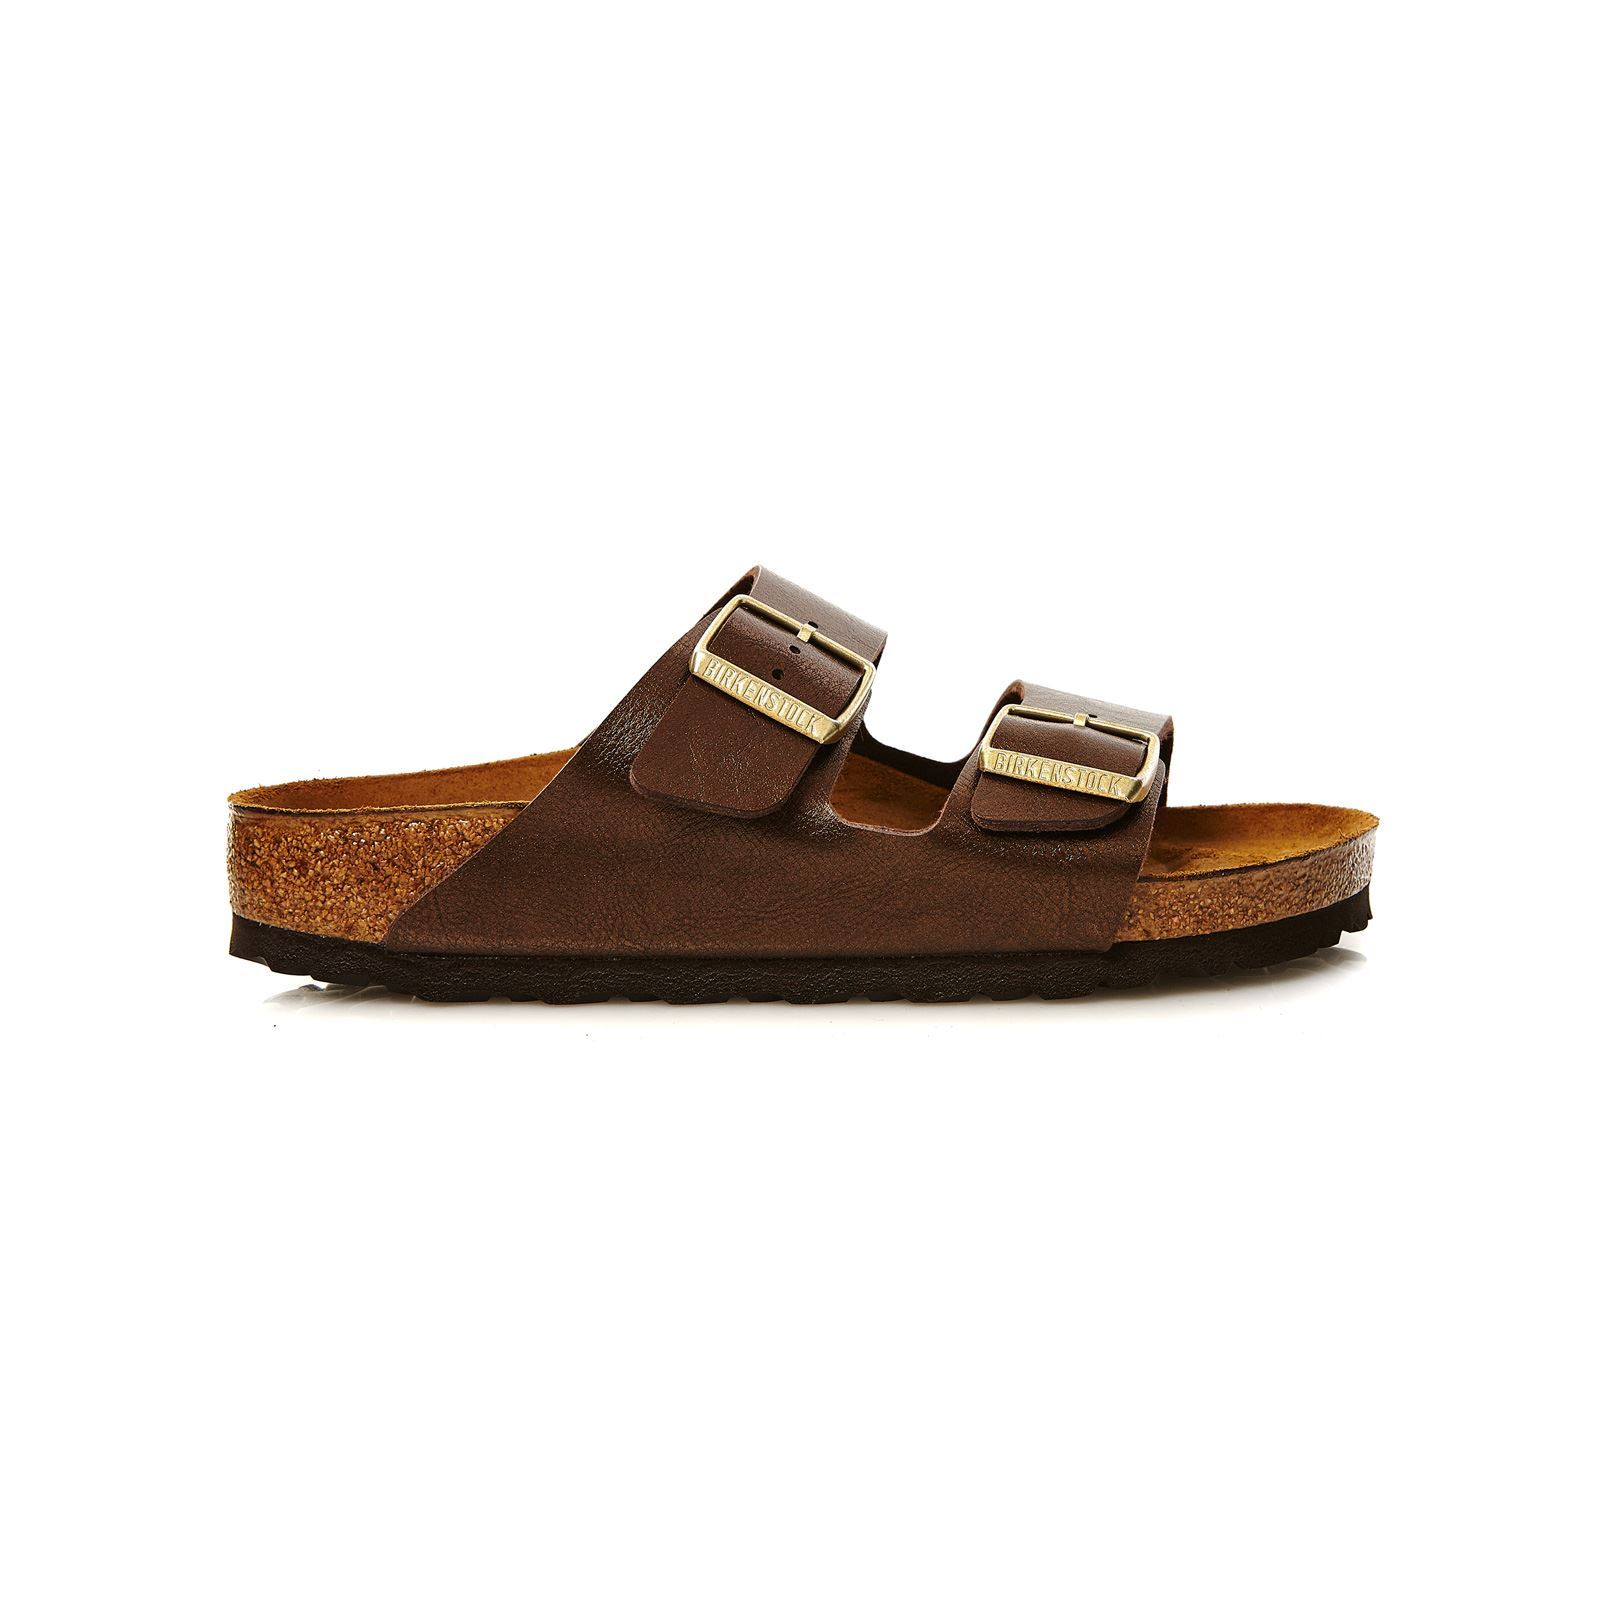 Strings Arizona Birkenstock 0H2Xj4MeO